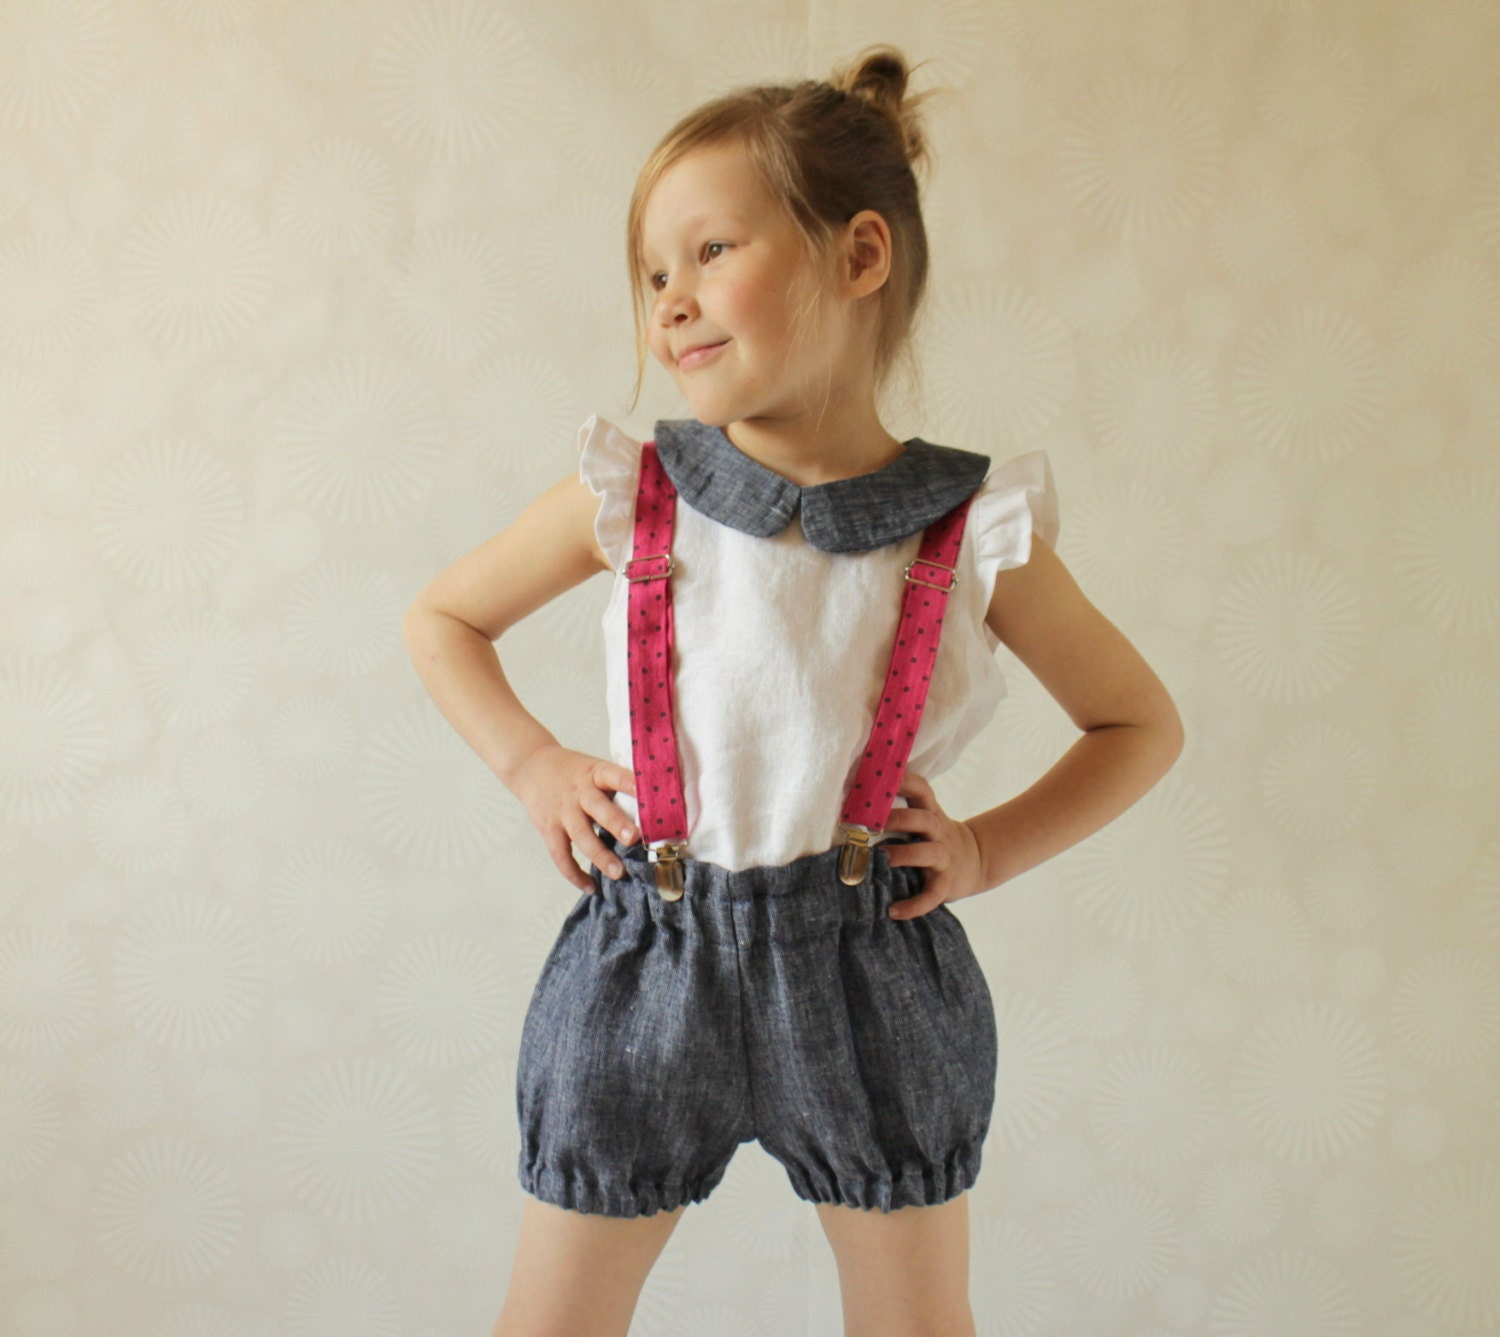 Kids and Junior Adult Ski Pant Suspenders are a wonderful way to keep them up whether playing in the snow or hitting the slopes.